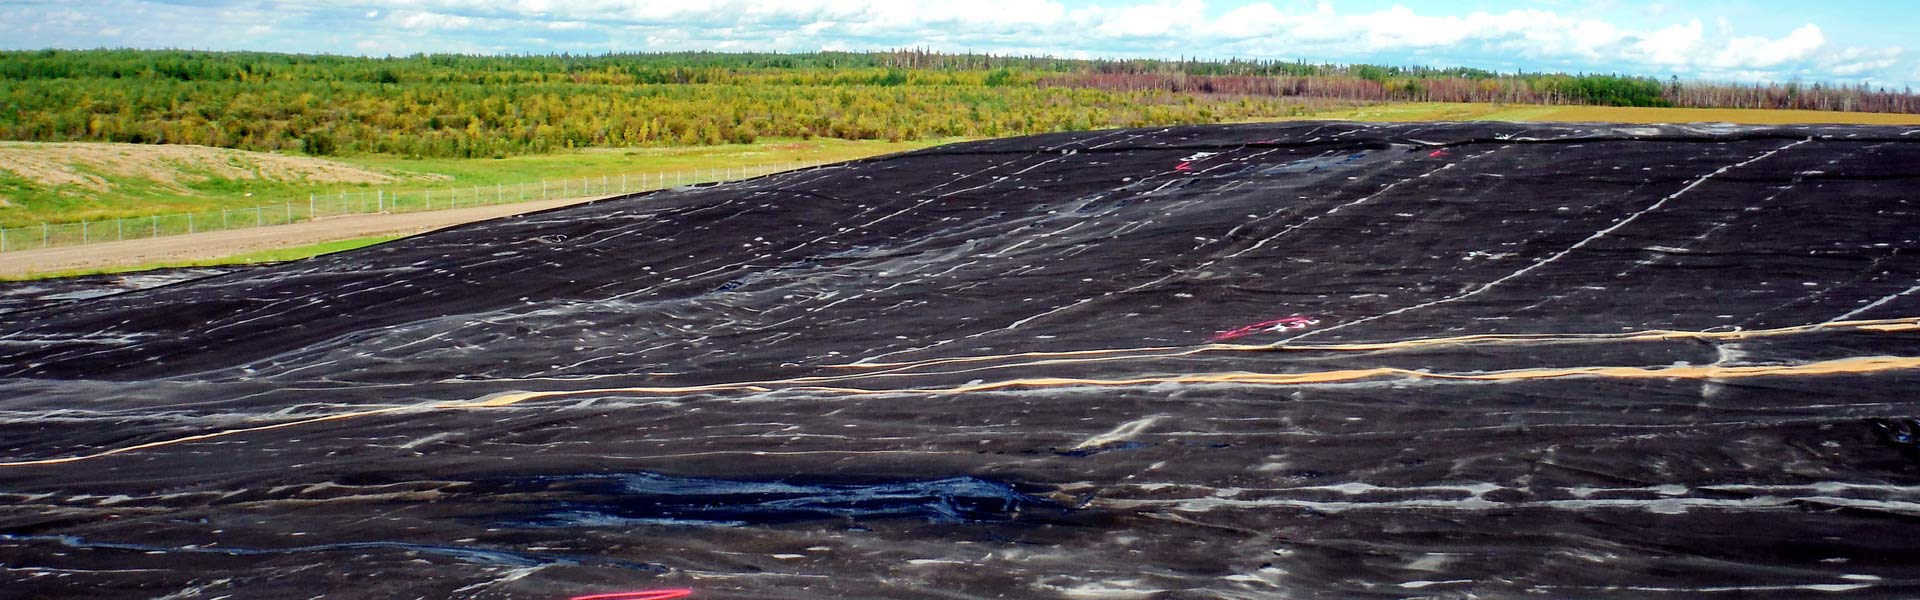 Silverberry Secure Landfill